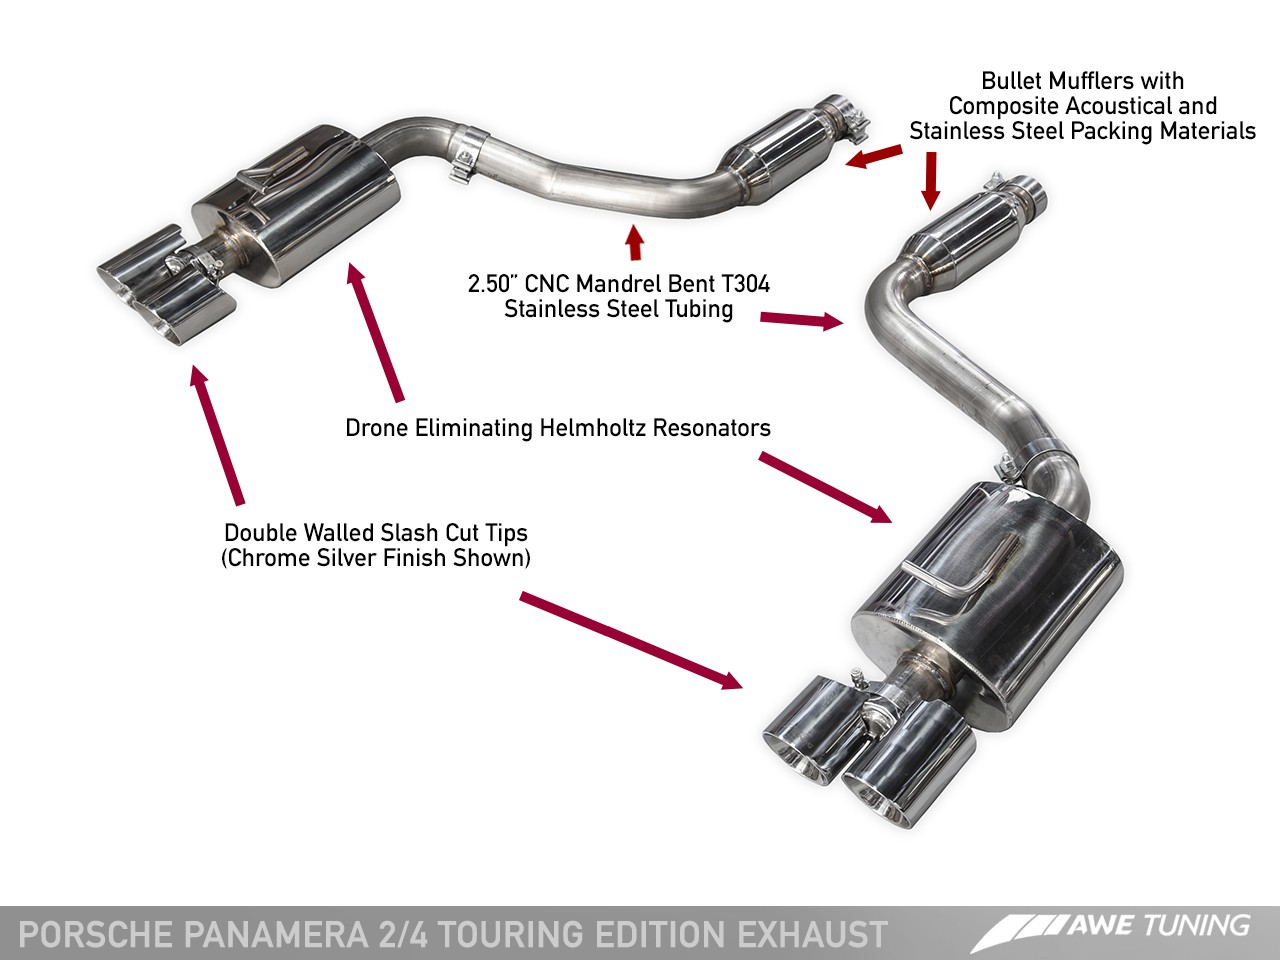 Power To The Panamera Introducing Awe Tuning 36l 3 6l V6 Engine Diagram Exhaust Systems